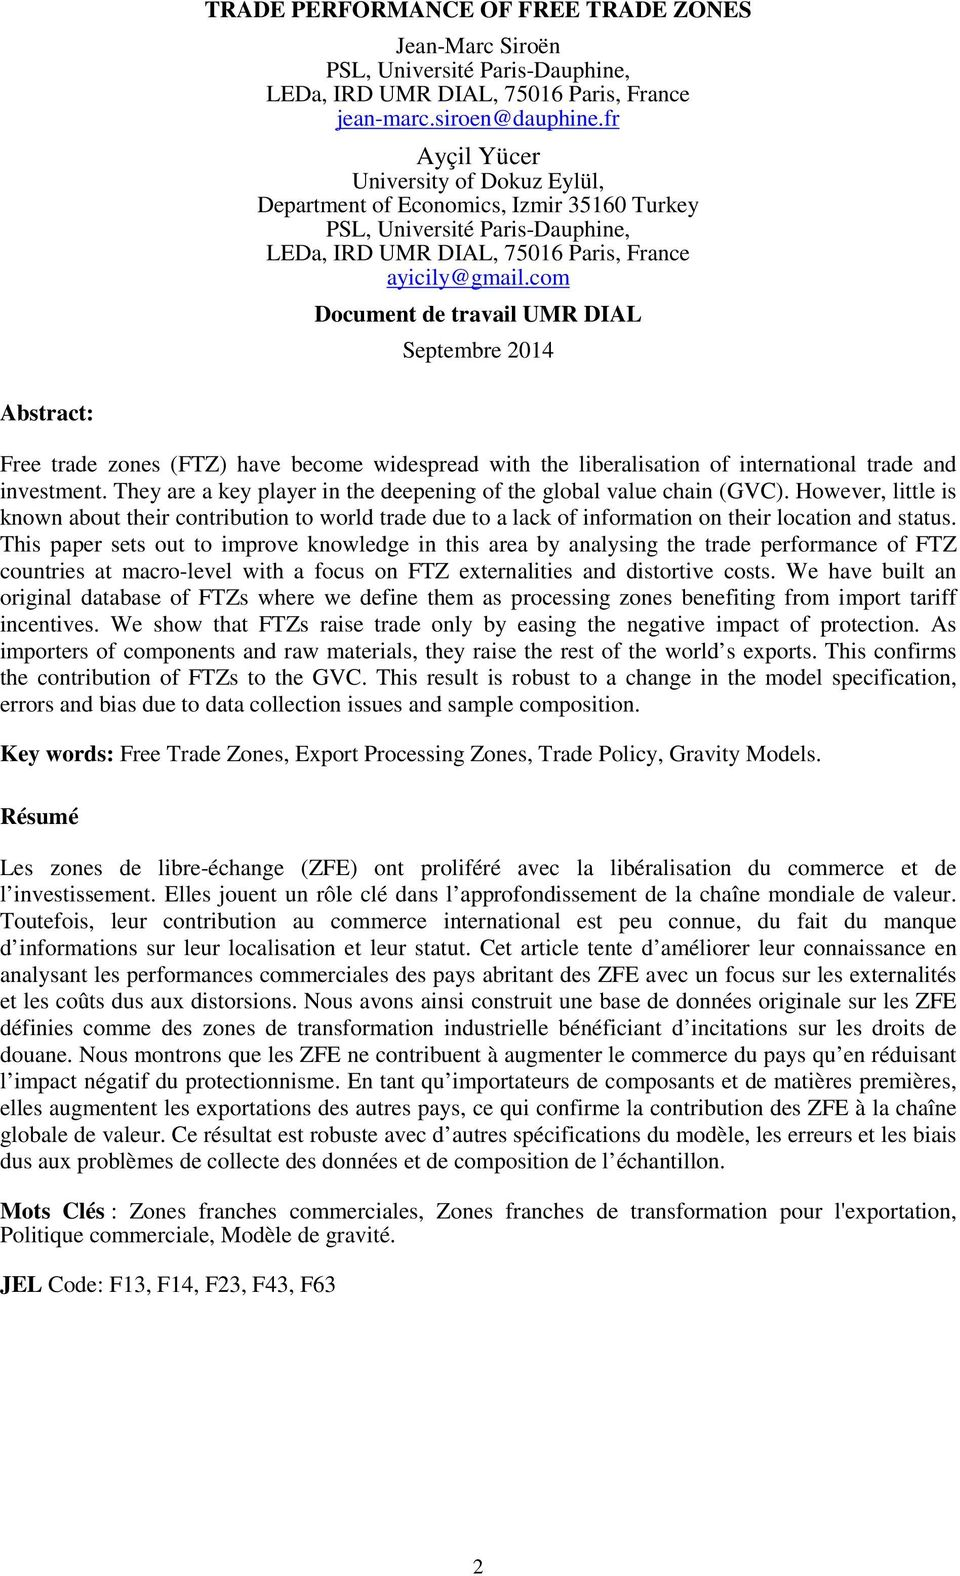 com Document de travail UMR DIAL Septembre 2014 Abstract: Free trade zones (FTZ) have become widespread with the liberalisation of international trade and investment.